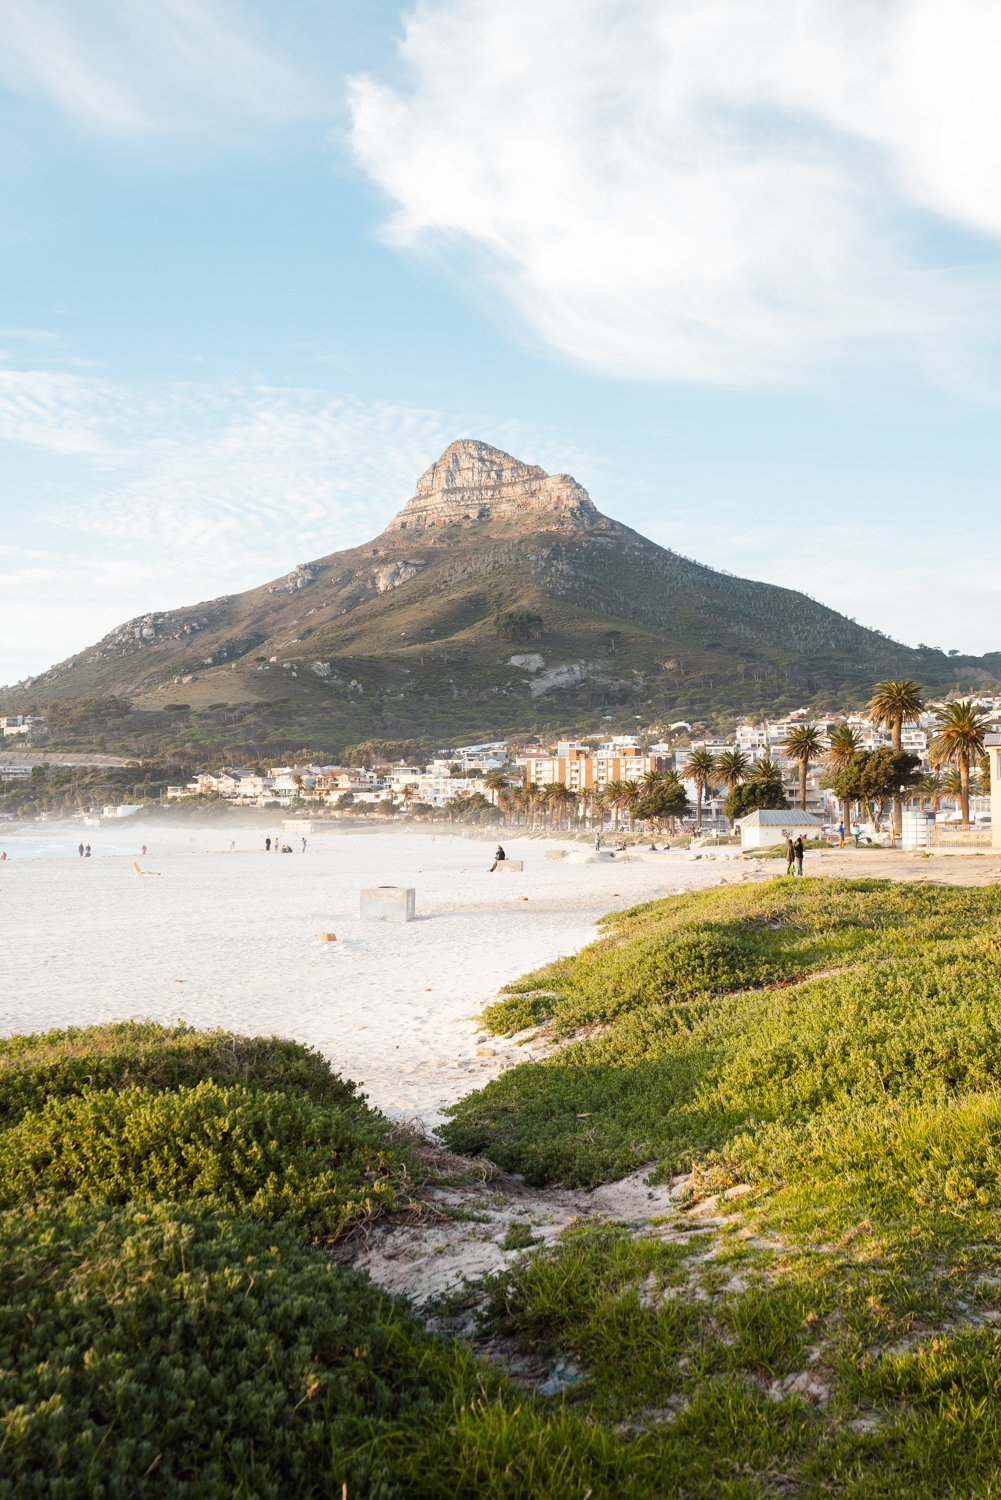 Lions Head seen from Camps Bay beach with green grass